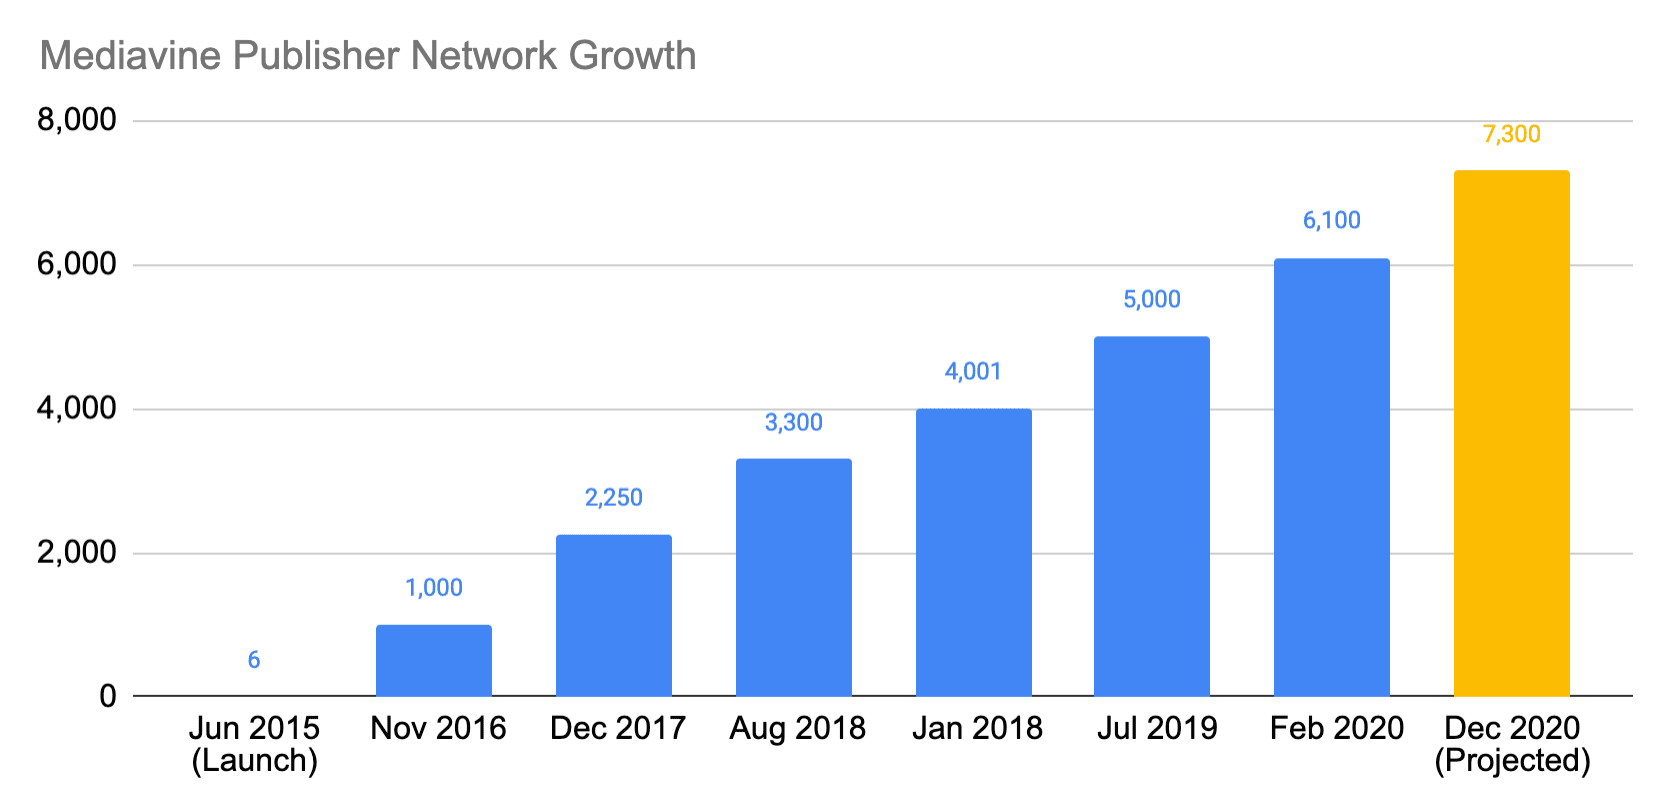 Mediavine publisher network user growth over time